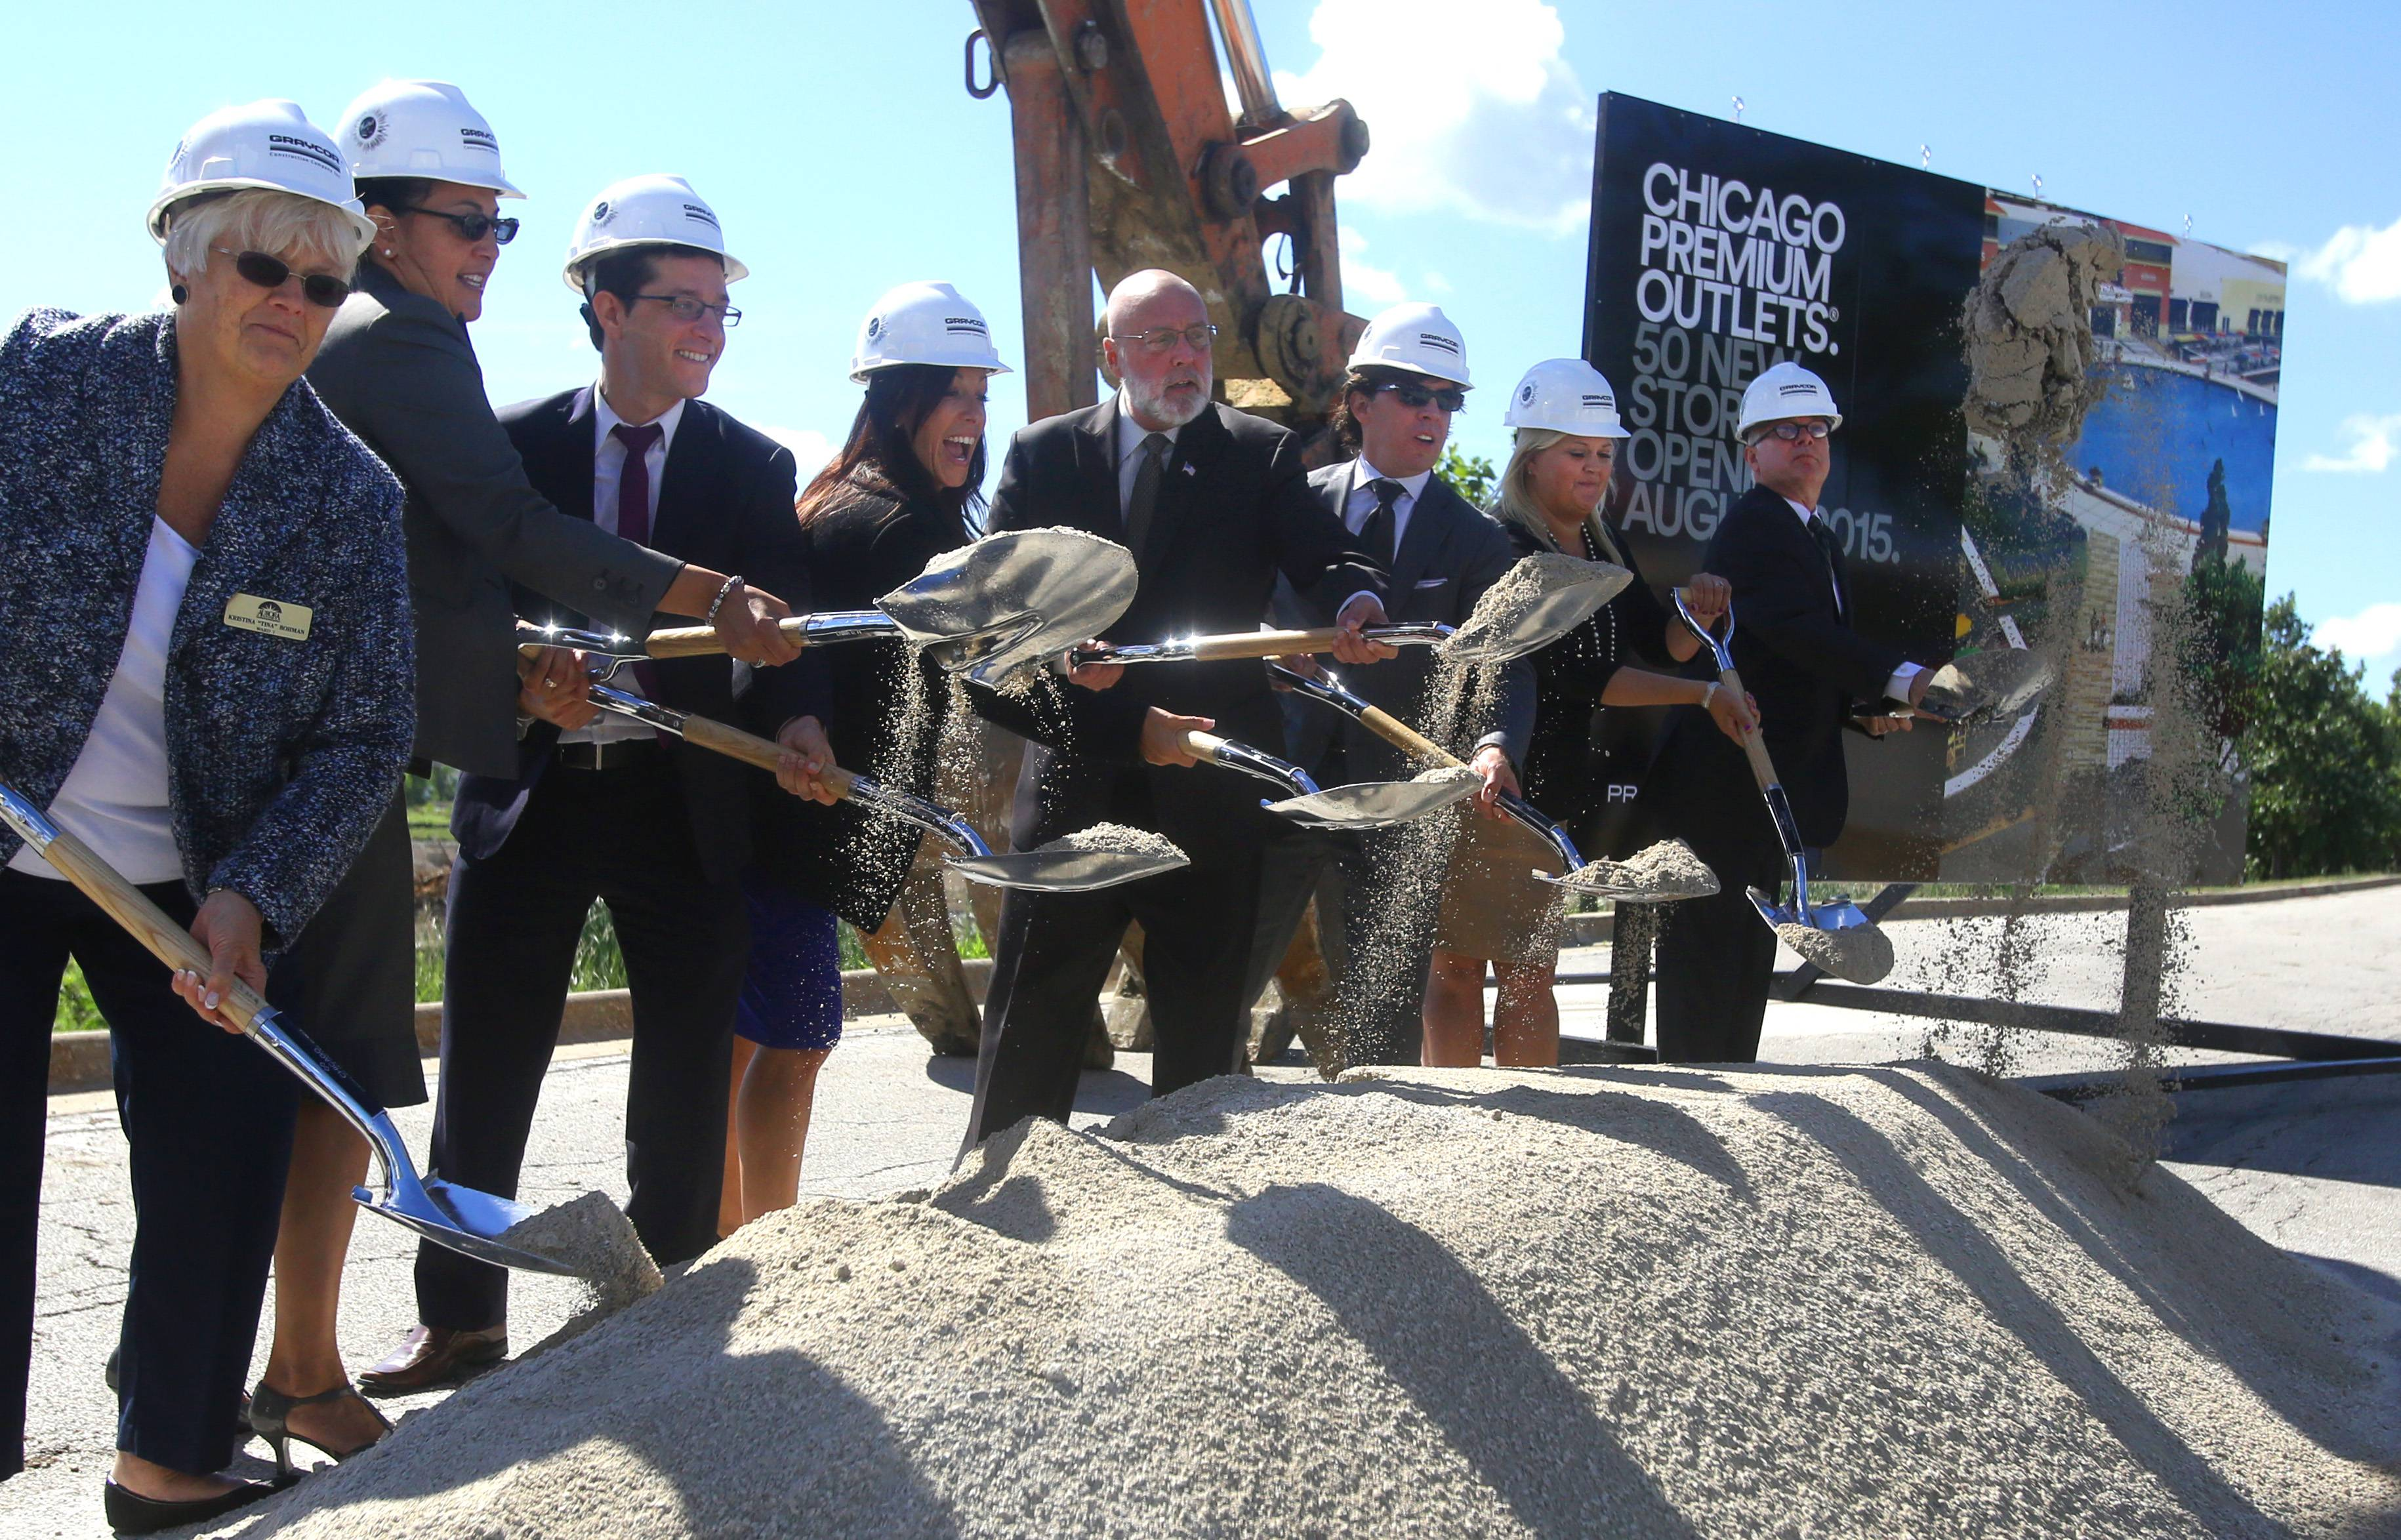 Aurora Mayor Tom Weisner, center, without hard hat, leads a groundbreaking ceremony Wednesday for a 50-store expansion of Chicago Premium Outlets at I-88 and Farnsworth Road.